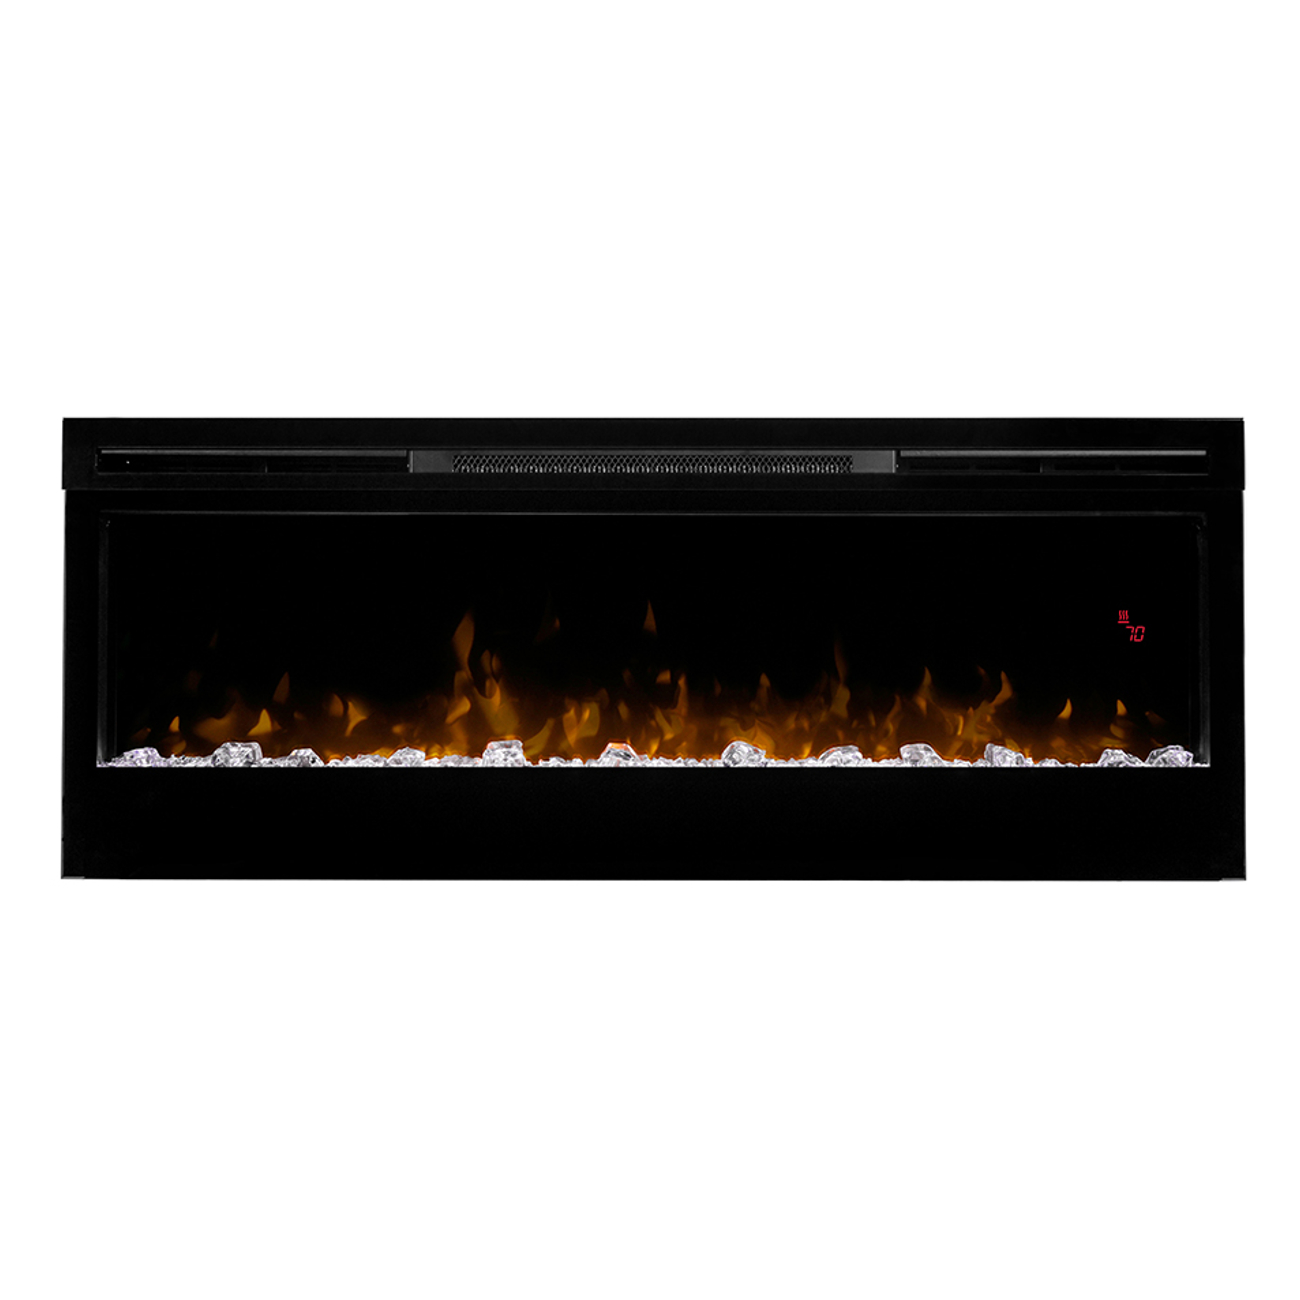 Dimplex 50 Inch Prism Electric Fireplace Insert Wall Mount BLF5051